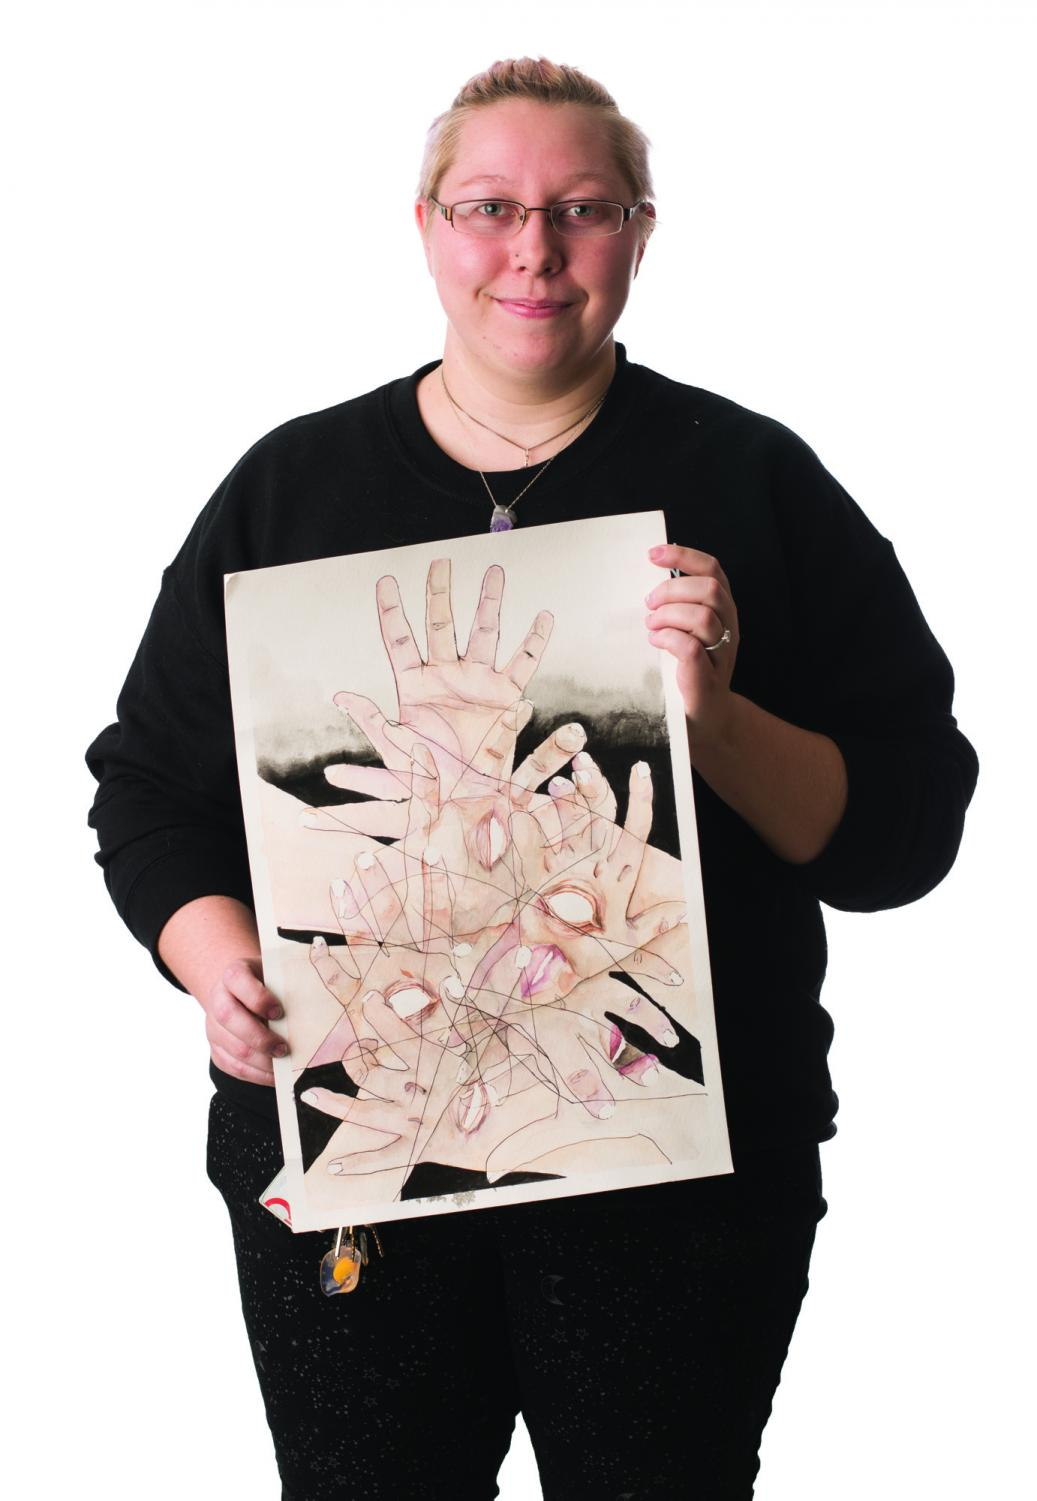 Madison Cockrum has learned art through anime. Photo credit: Sean Martens